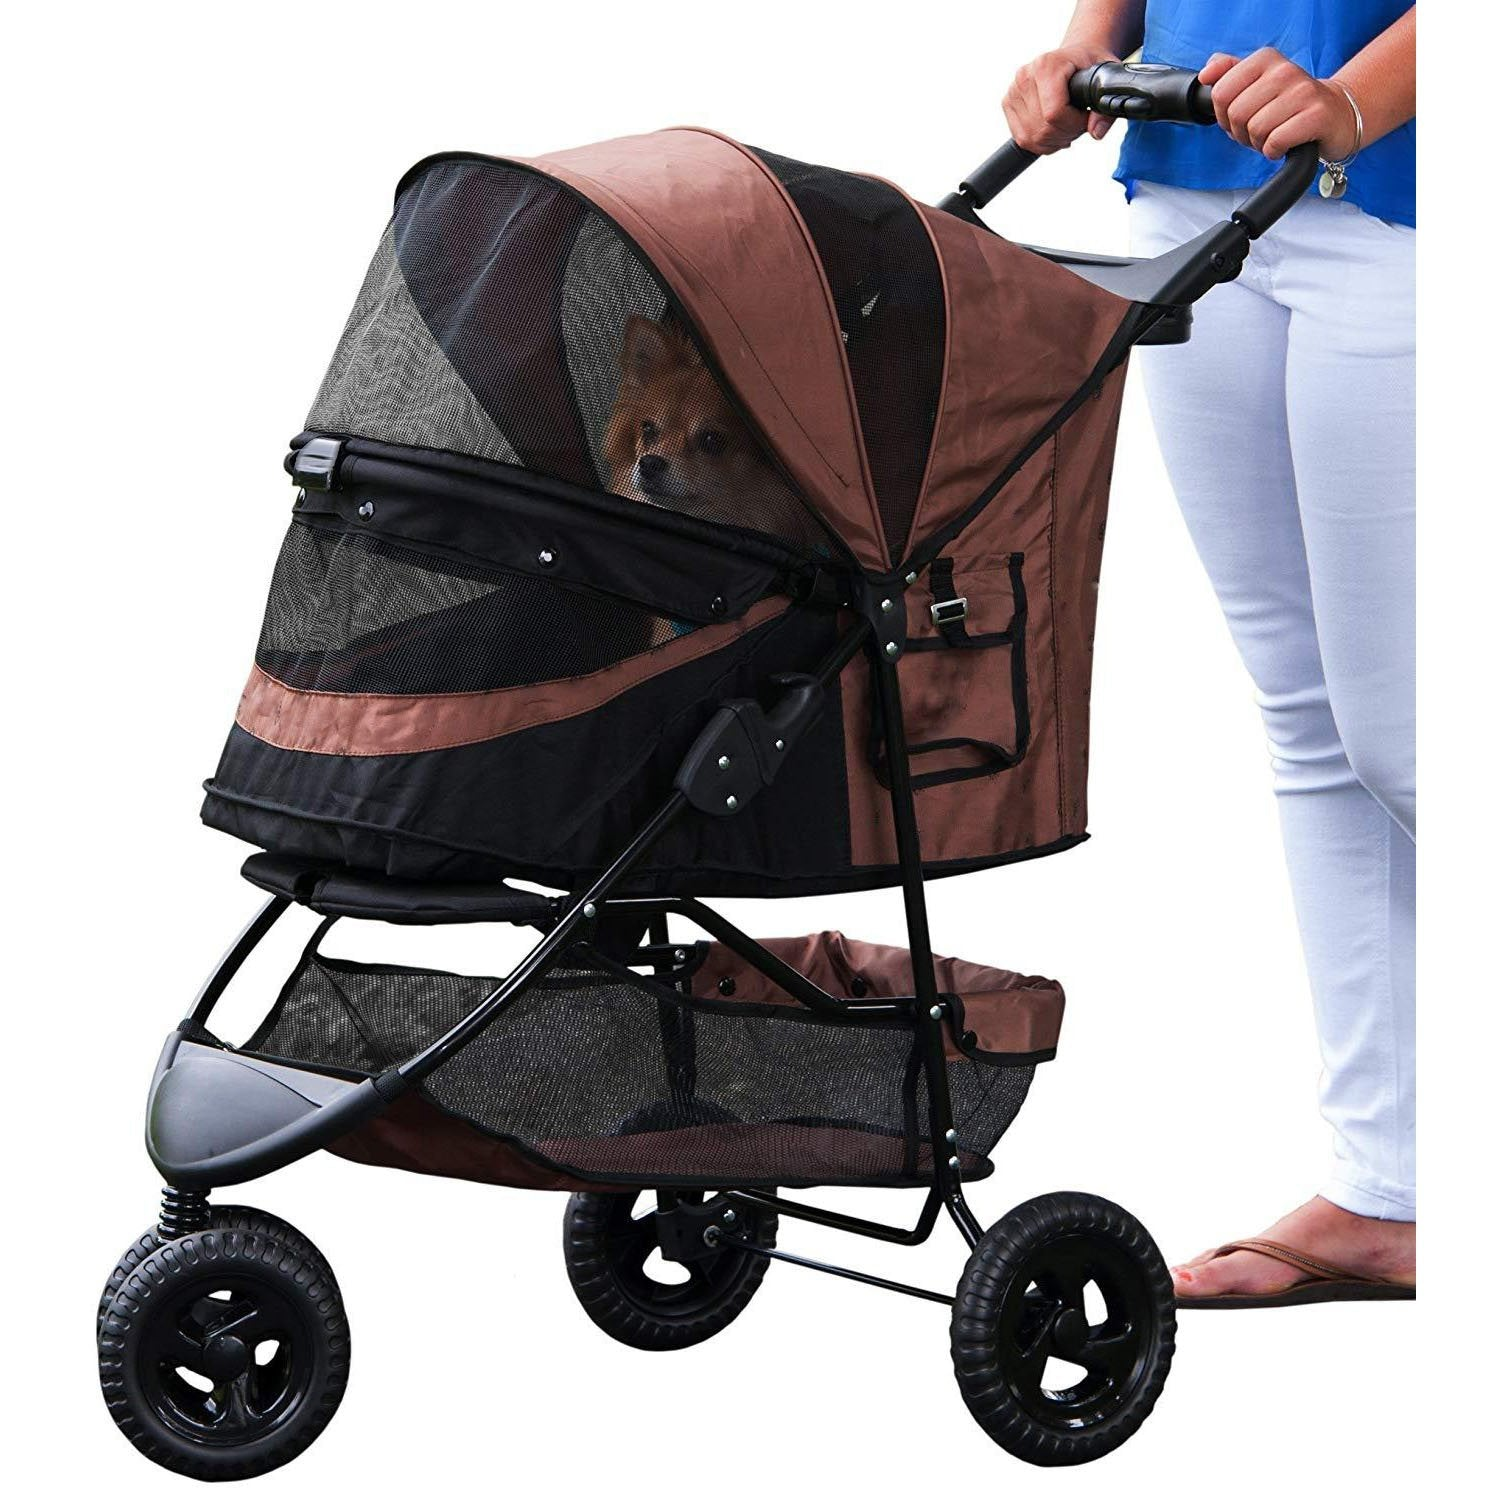 No-Zip 3 Wheel Pet Stroller For Cats/Dogs